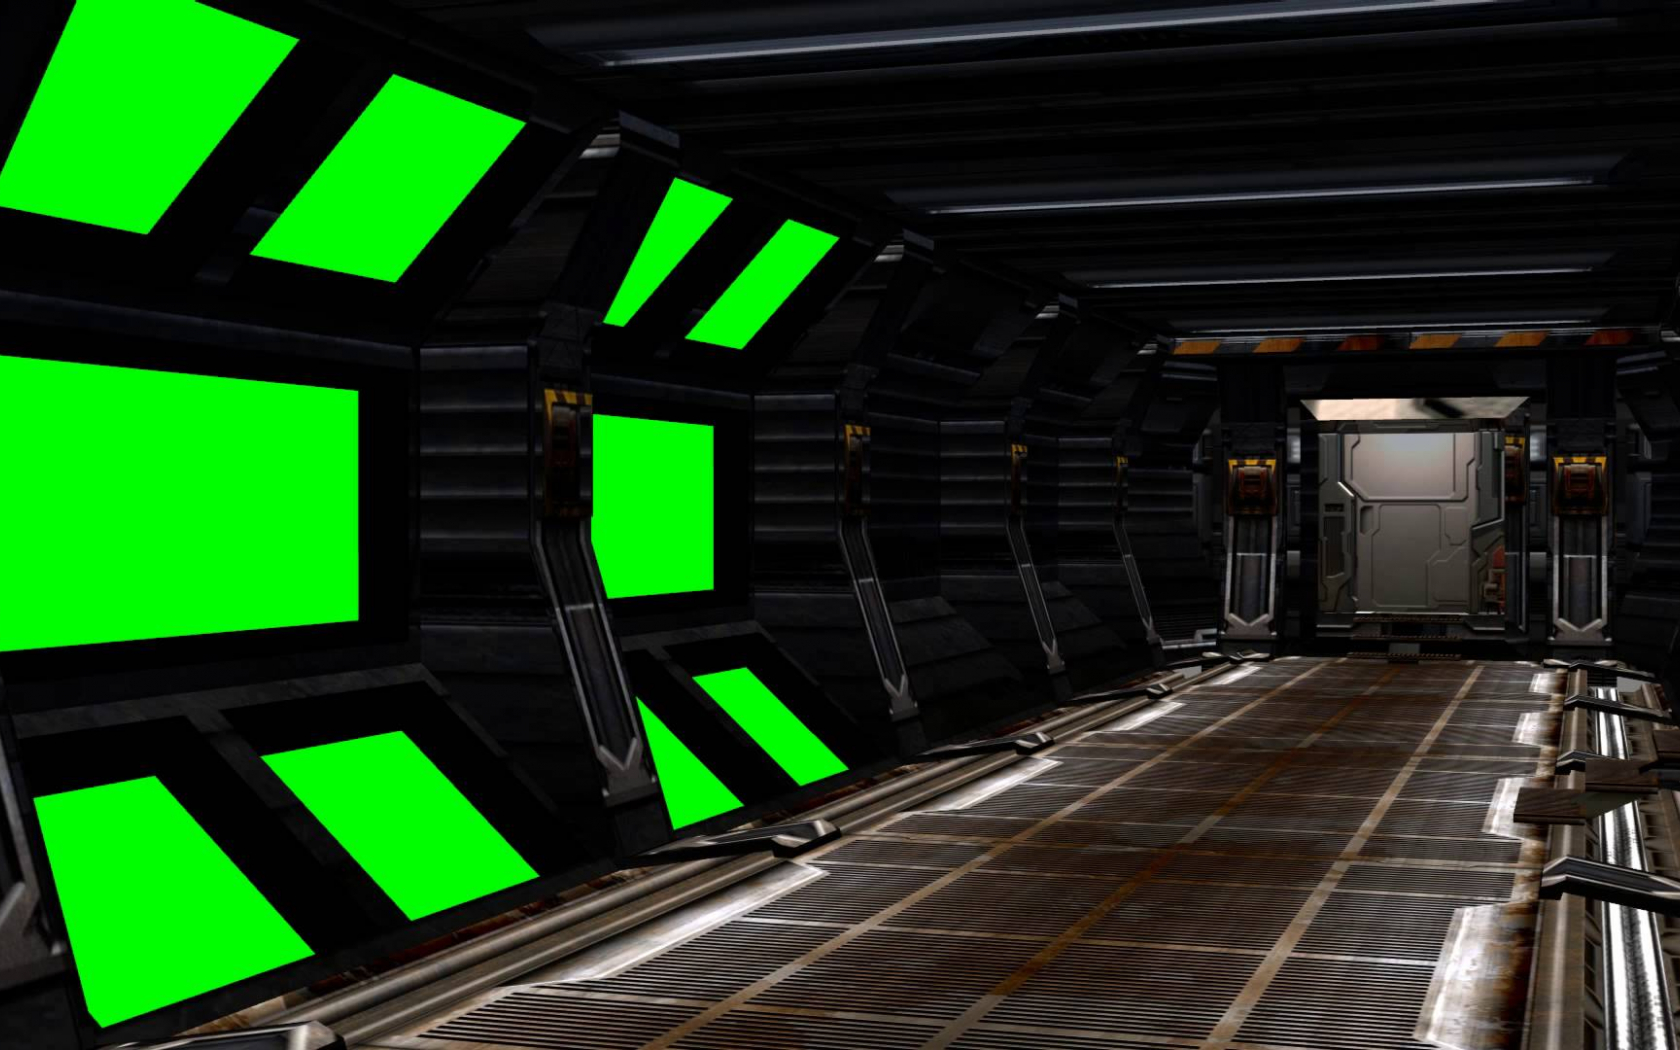 Free Download Spaceship Interior With Sound Green Screen Set A